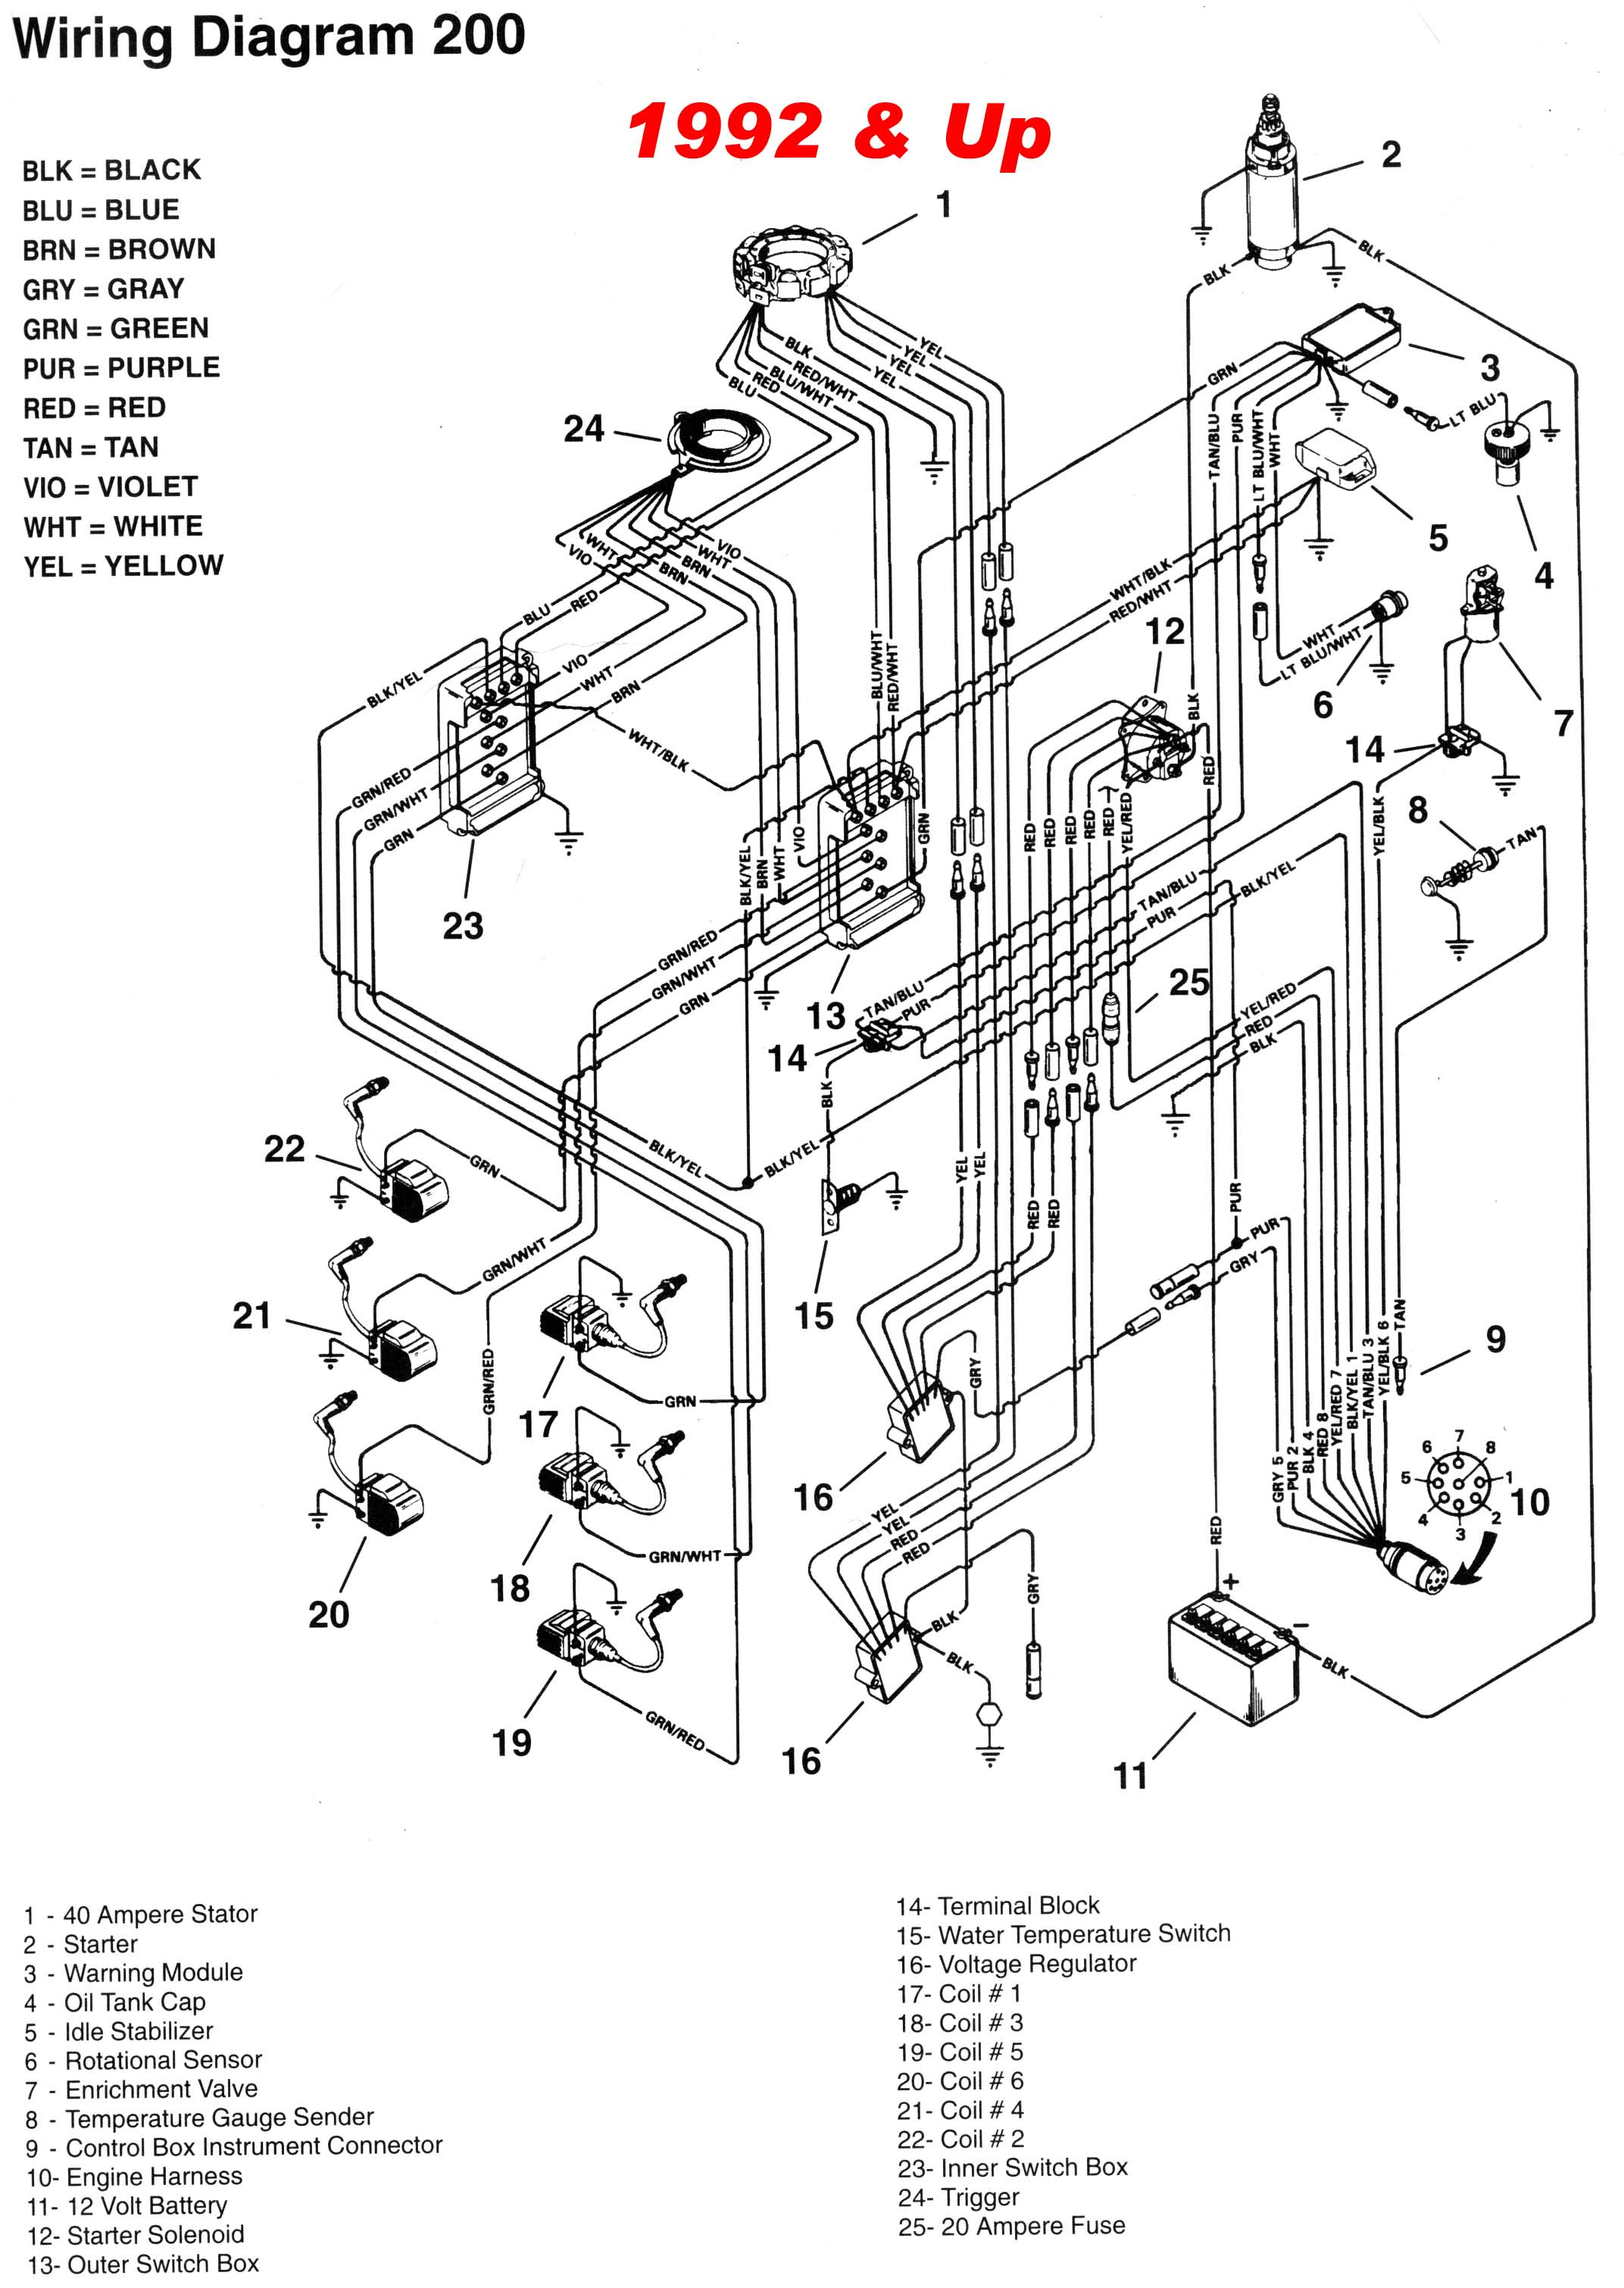 mercury_92up_200_wiring wiring diagram for 1998 mercury outboard 150 readingrat net Yamaha Outboard Logo at love-stories.co